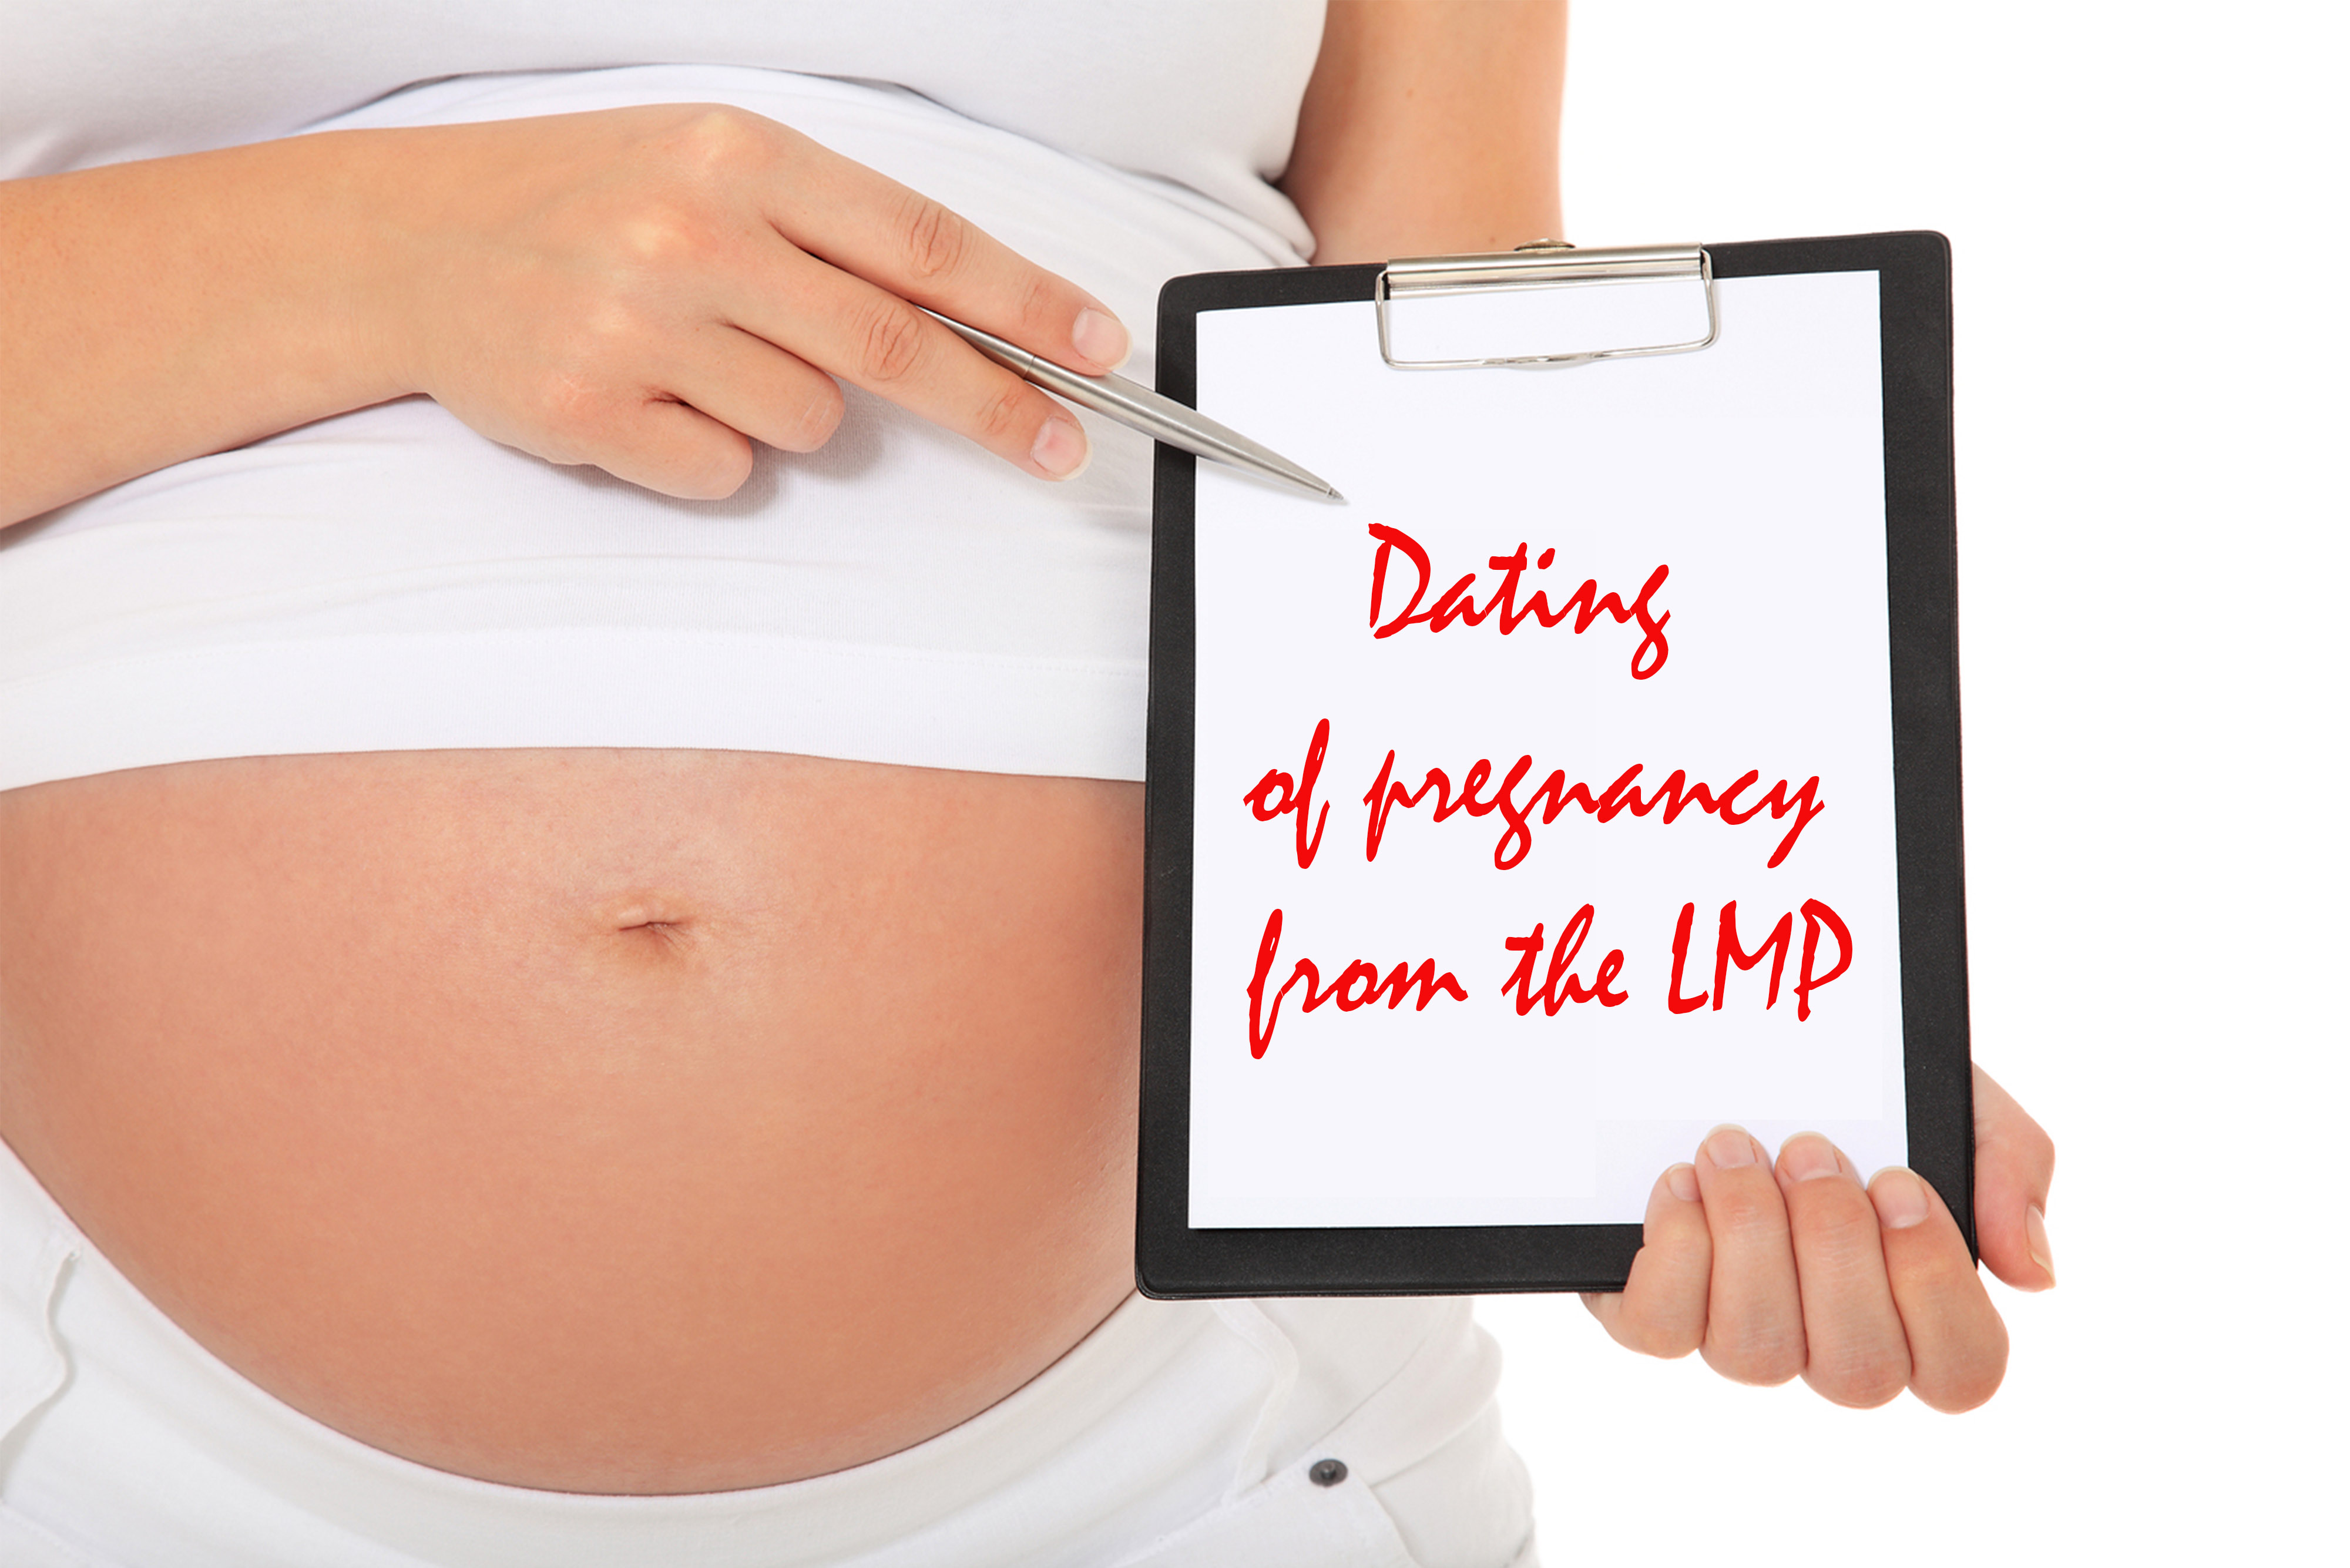 DATING OF PREGNANCY FROM THE LAST MENSTRUAL PERIOD (LMP)